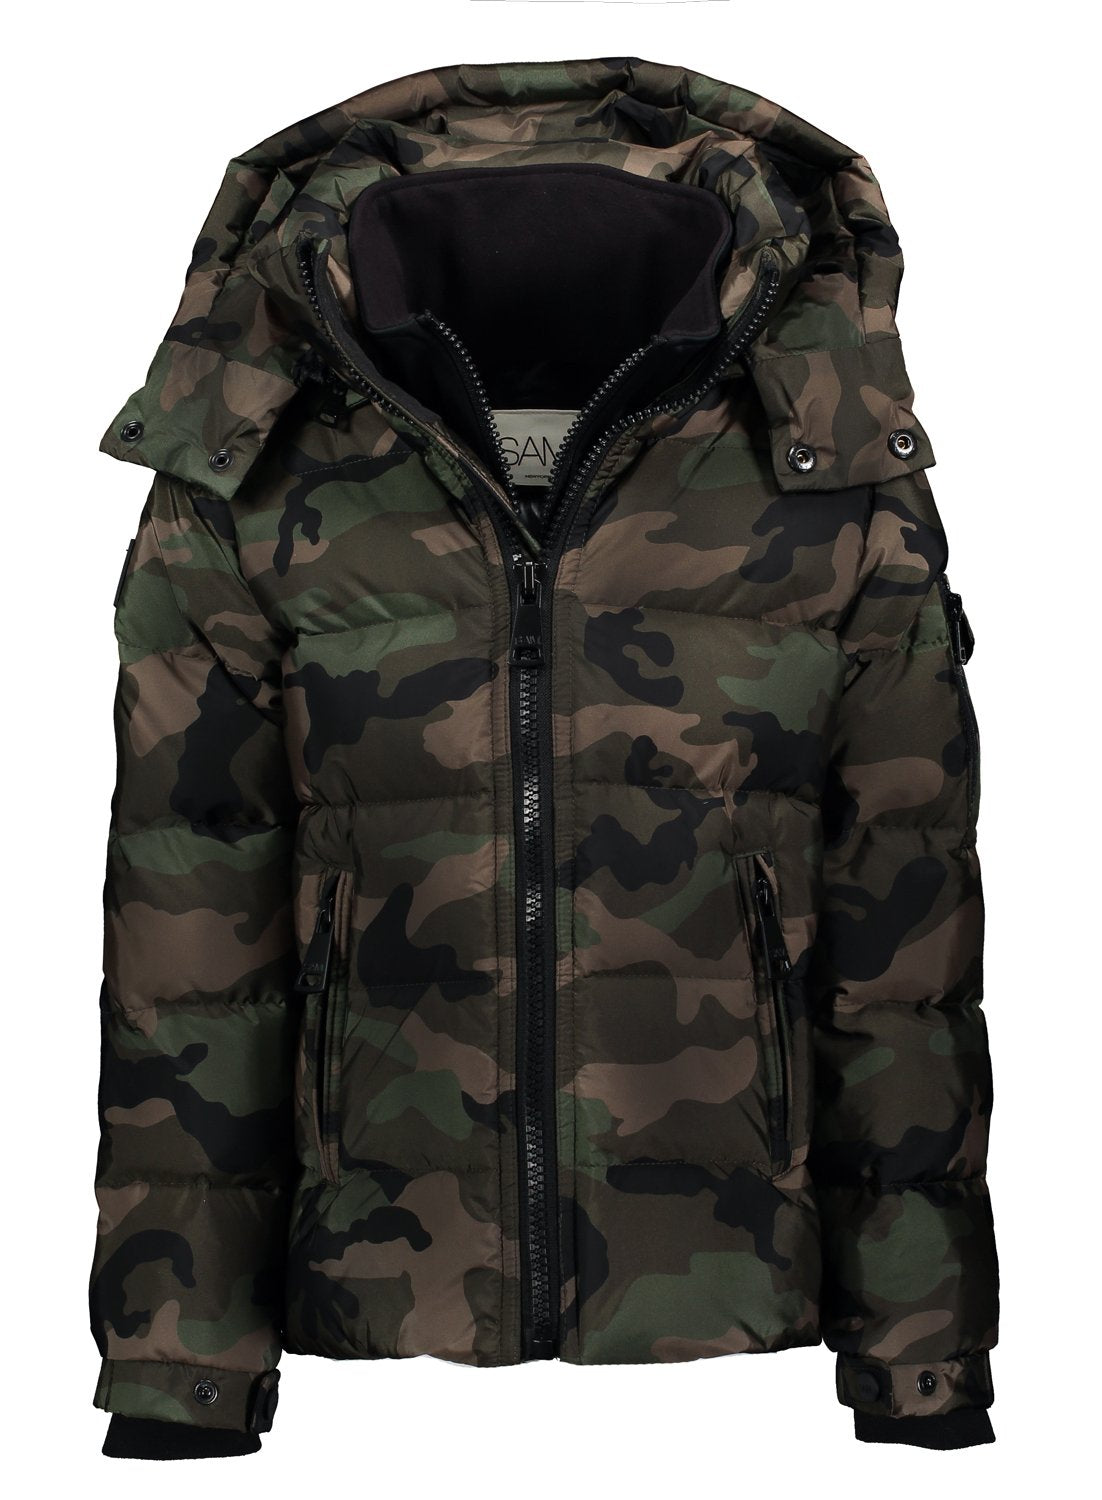 TODDLER BOYS CAMO GLACIER TODDLER BOYS CAMO GLACIER - SAM. New York Sam nyc jacket